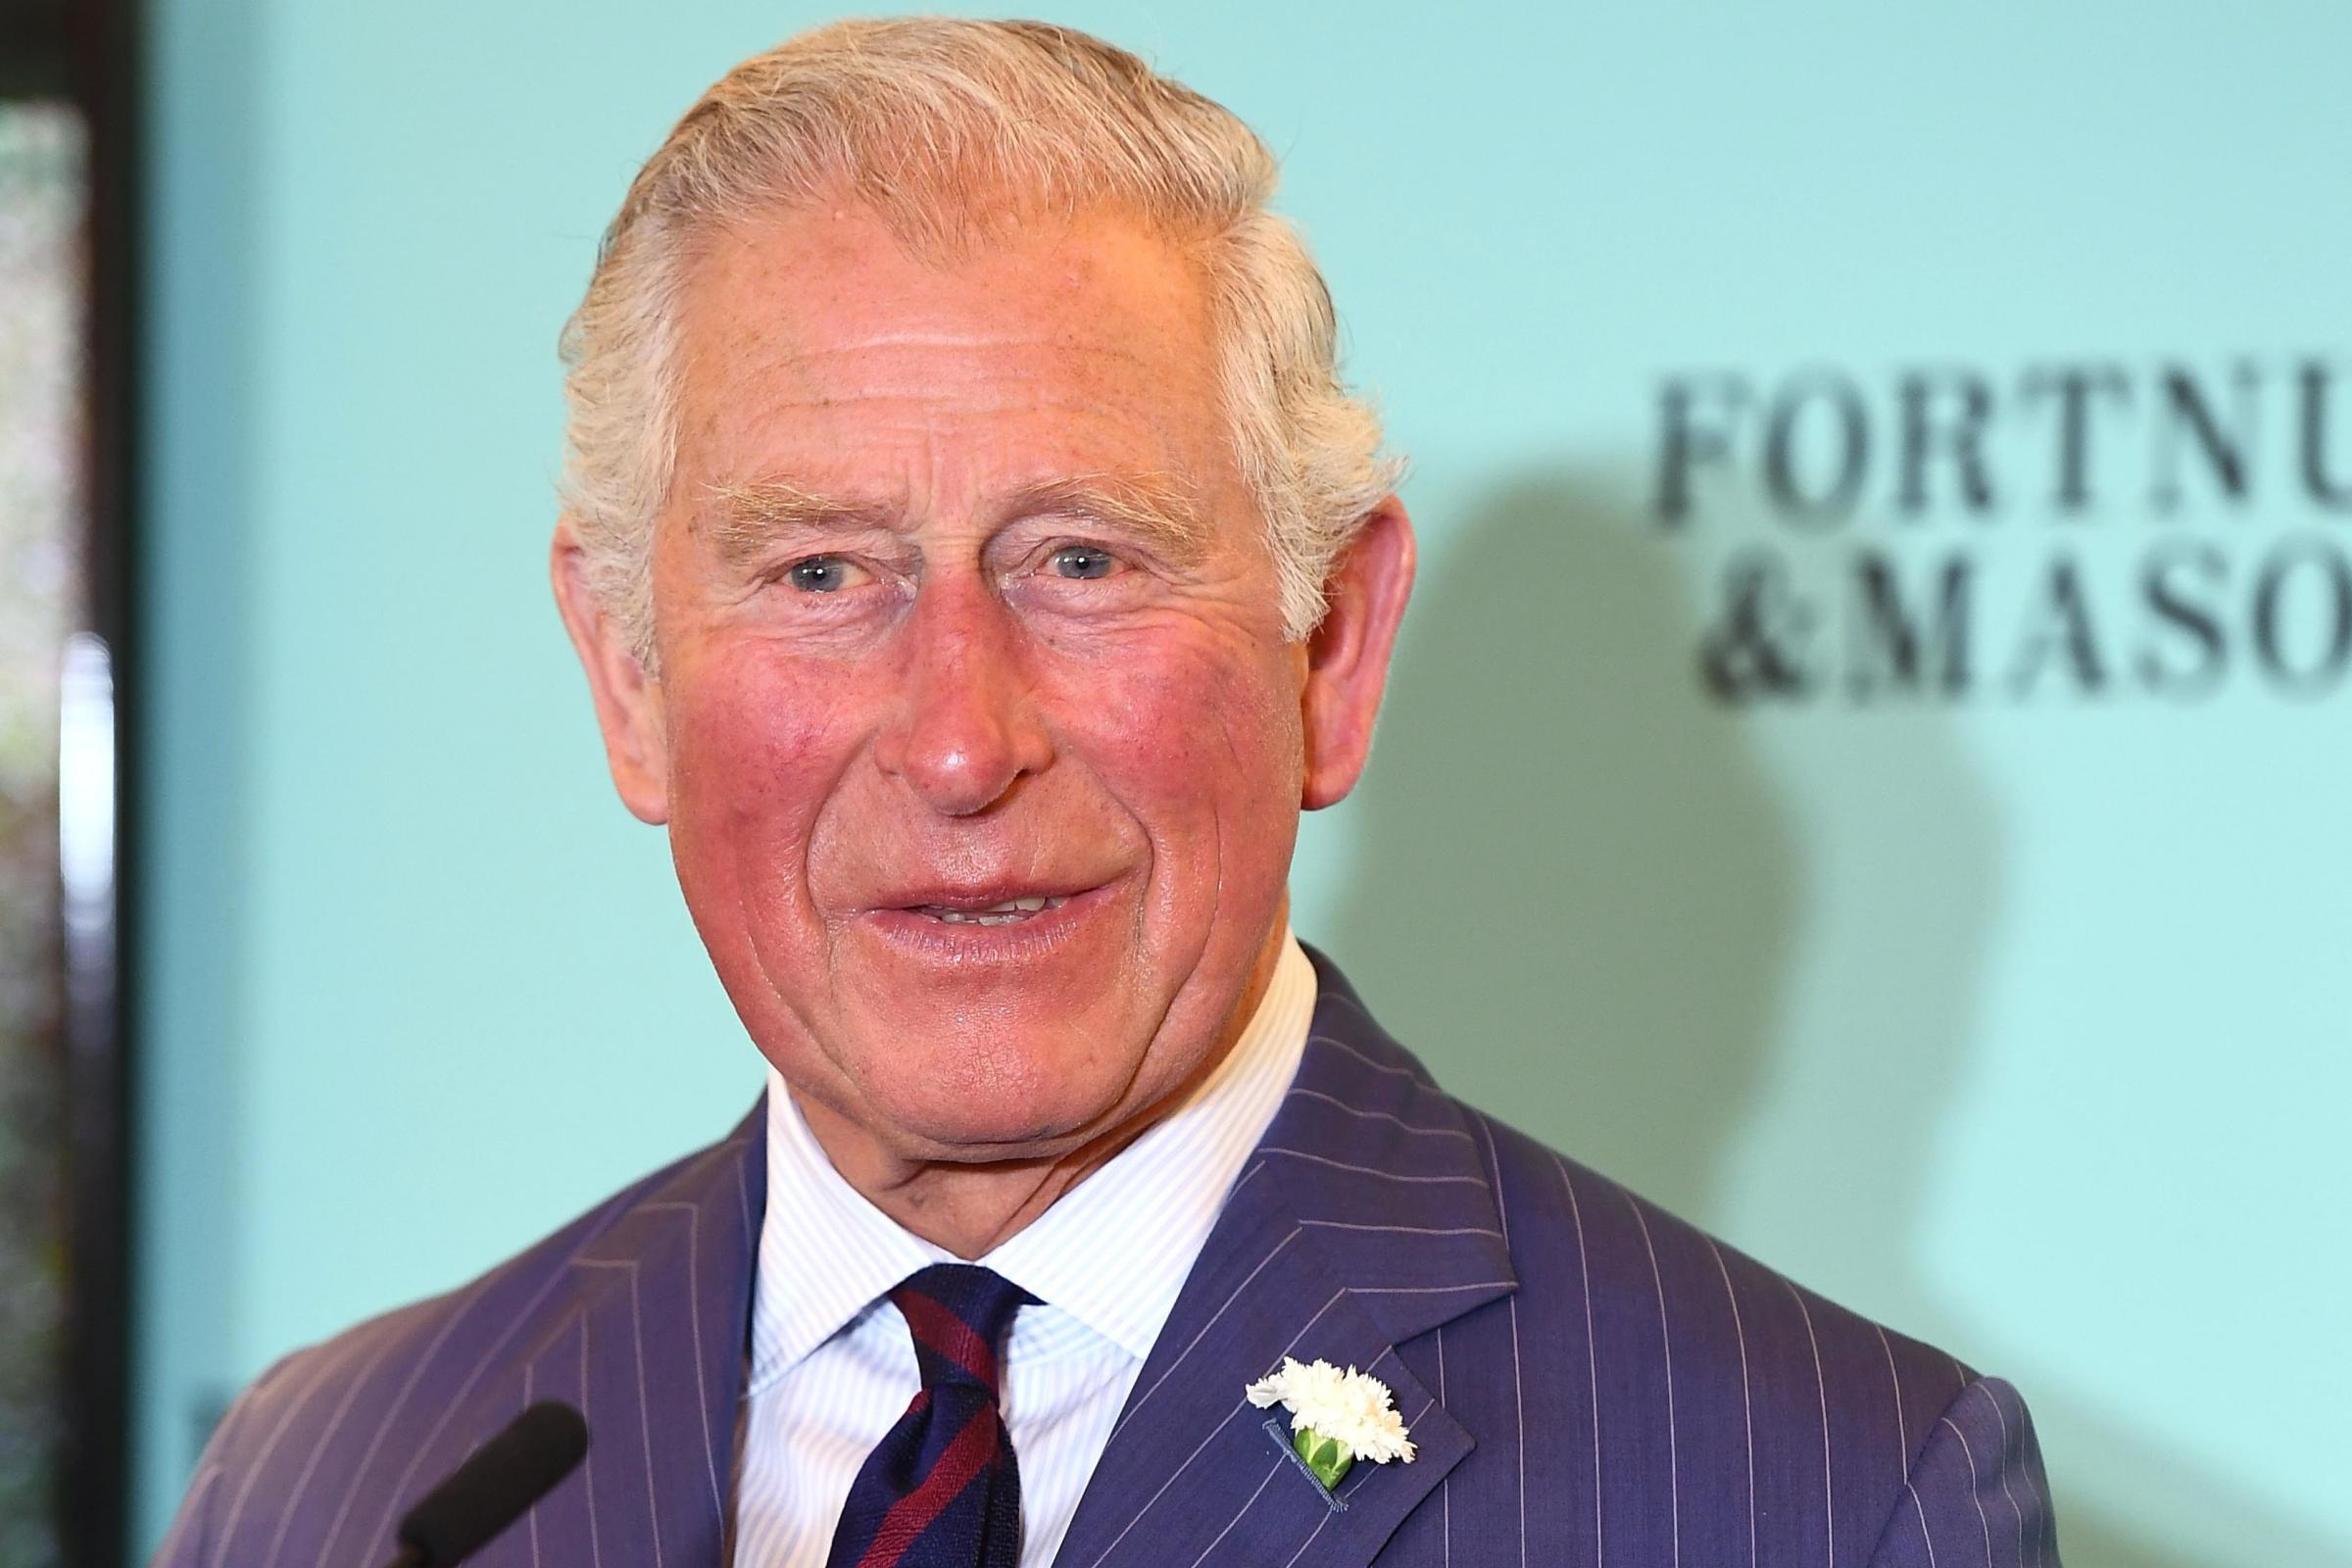 The Prince of Wales speaks after receiving an award in recognition of his commitment to supporting food and farming communities in the UK